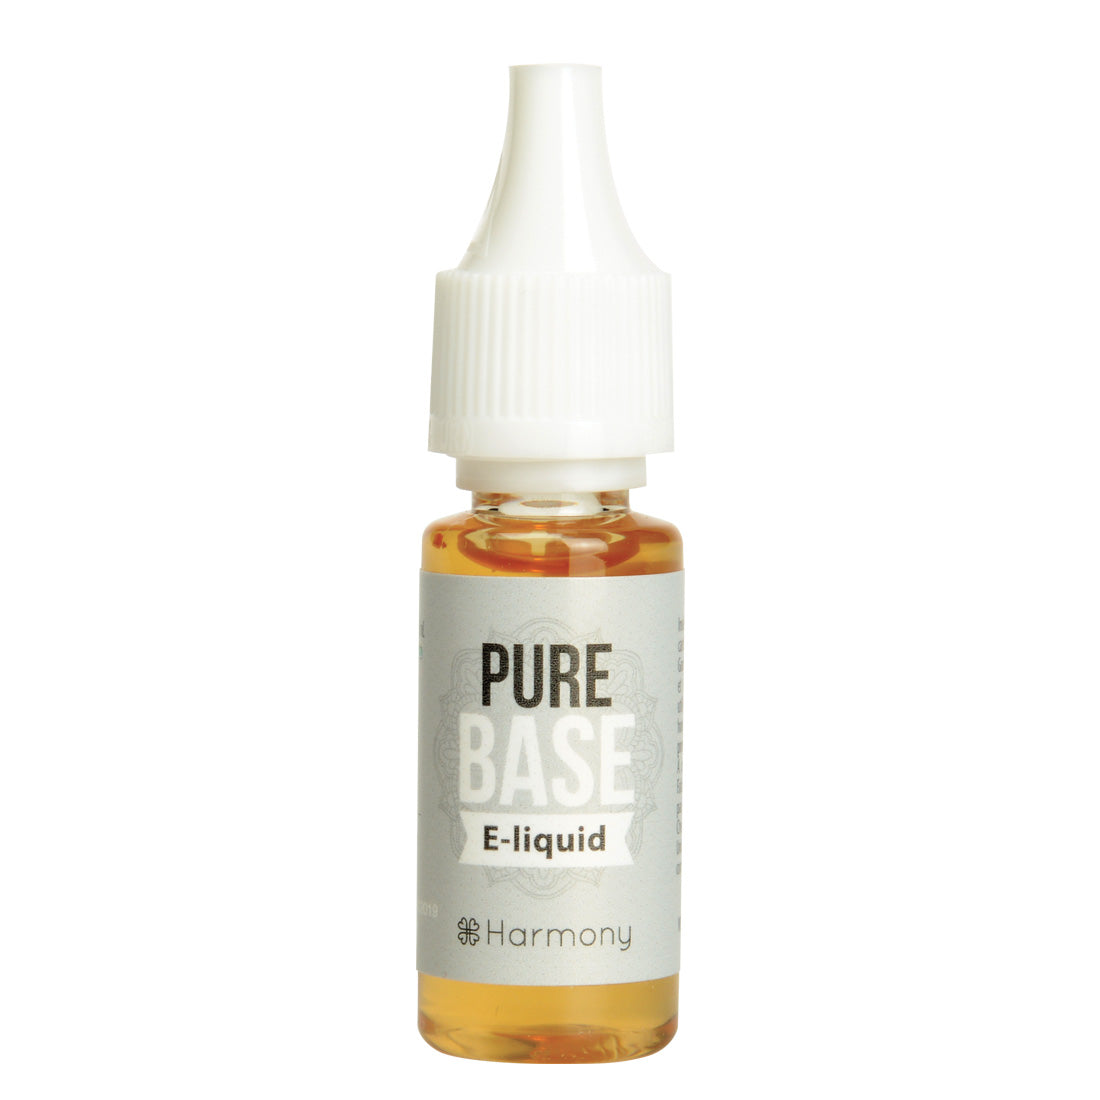 Pure base CBD